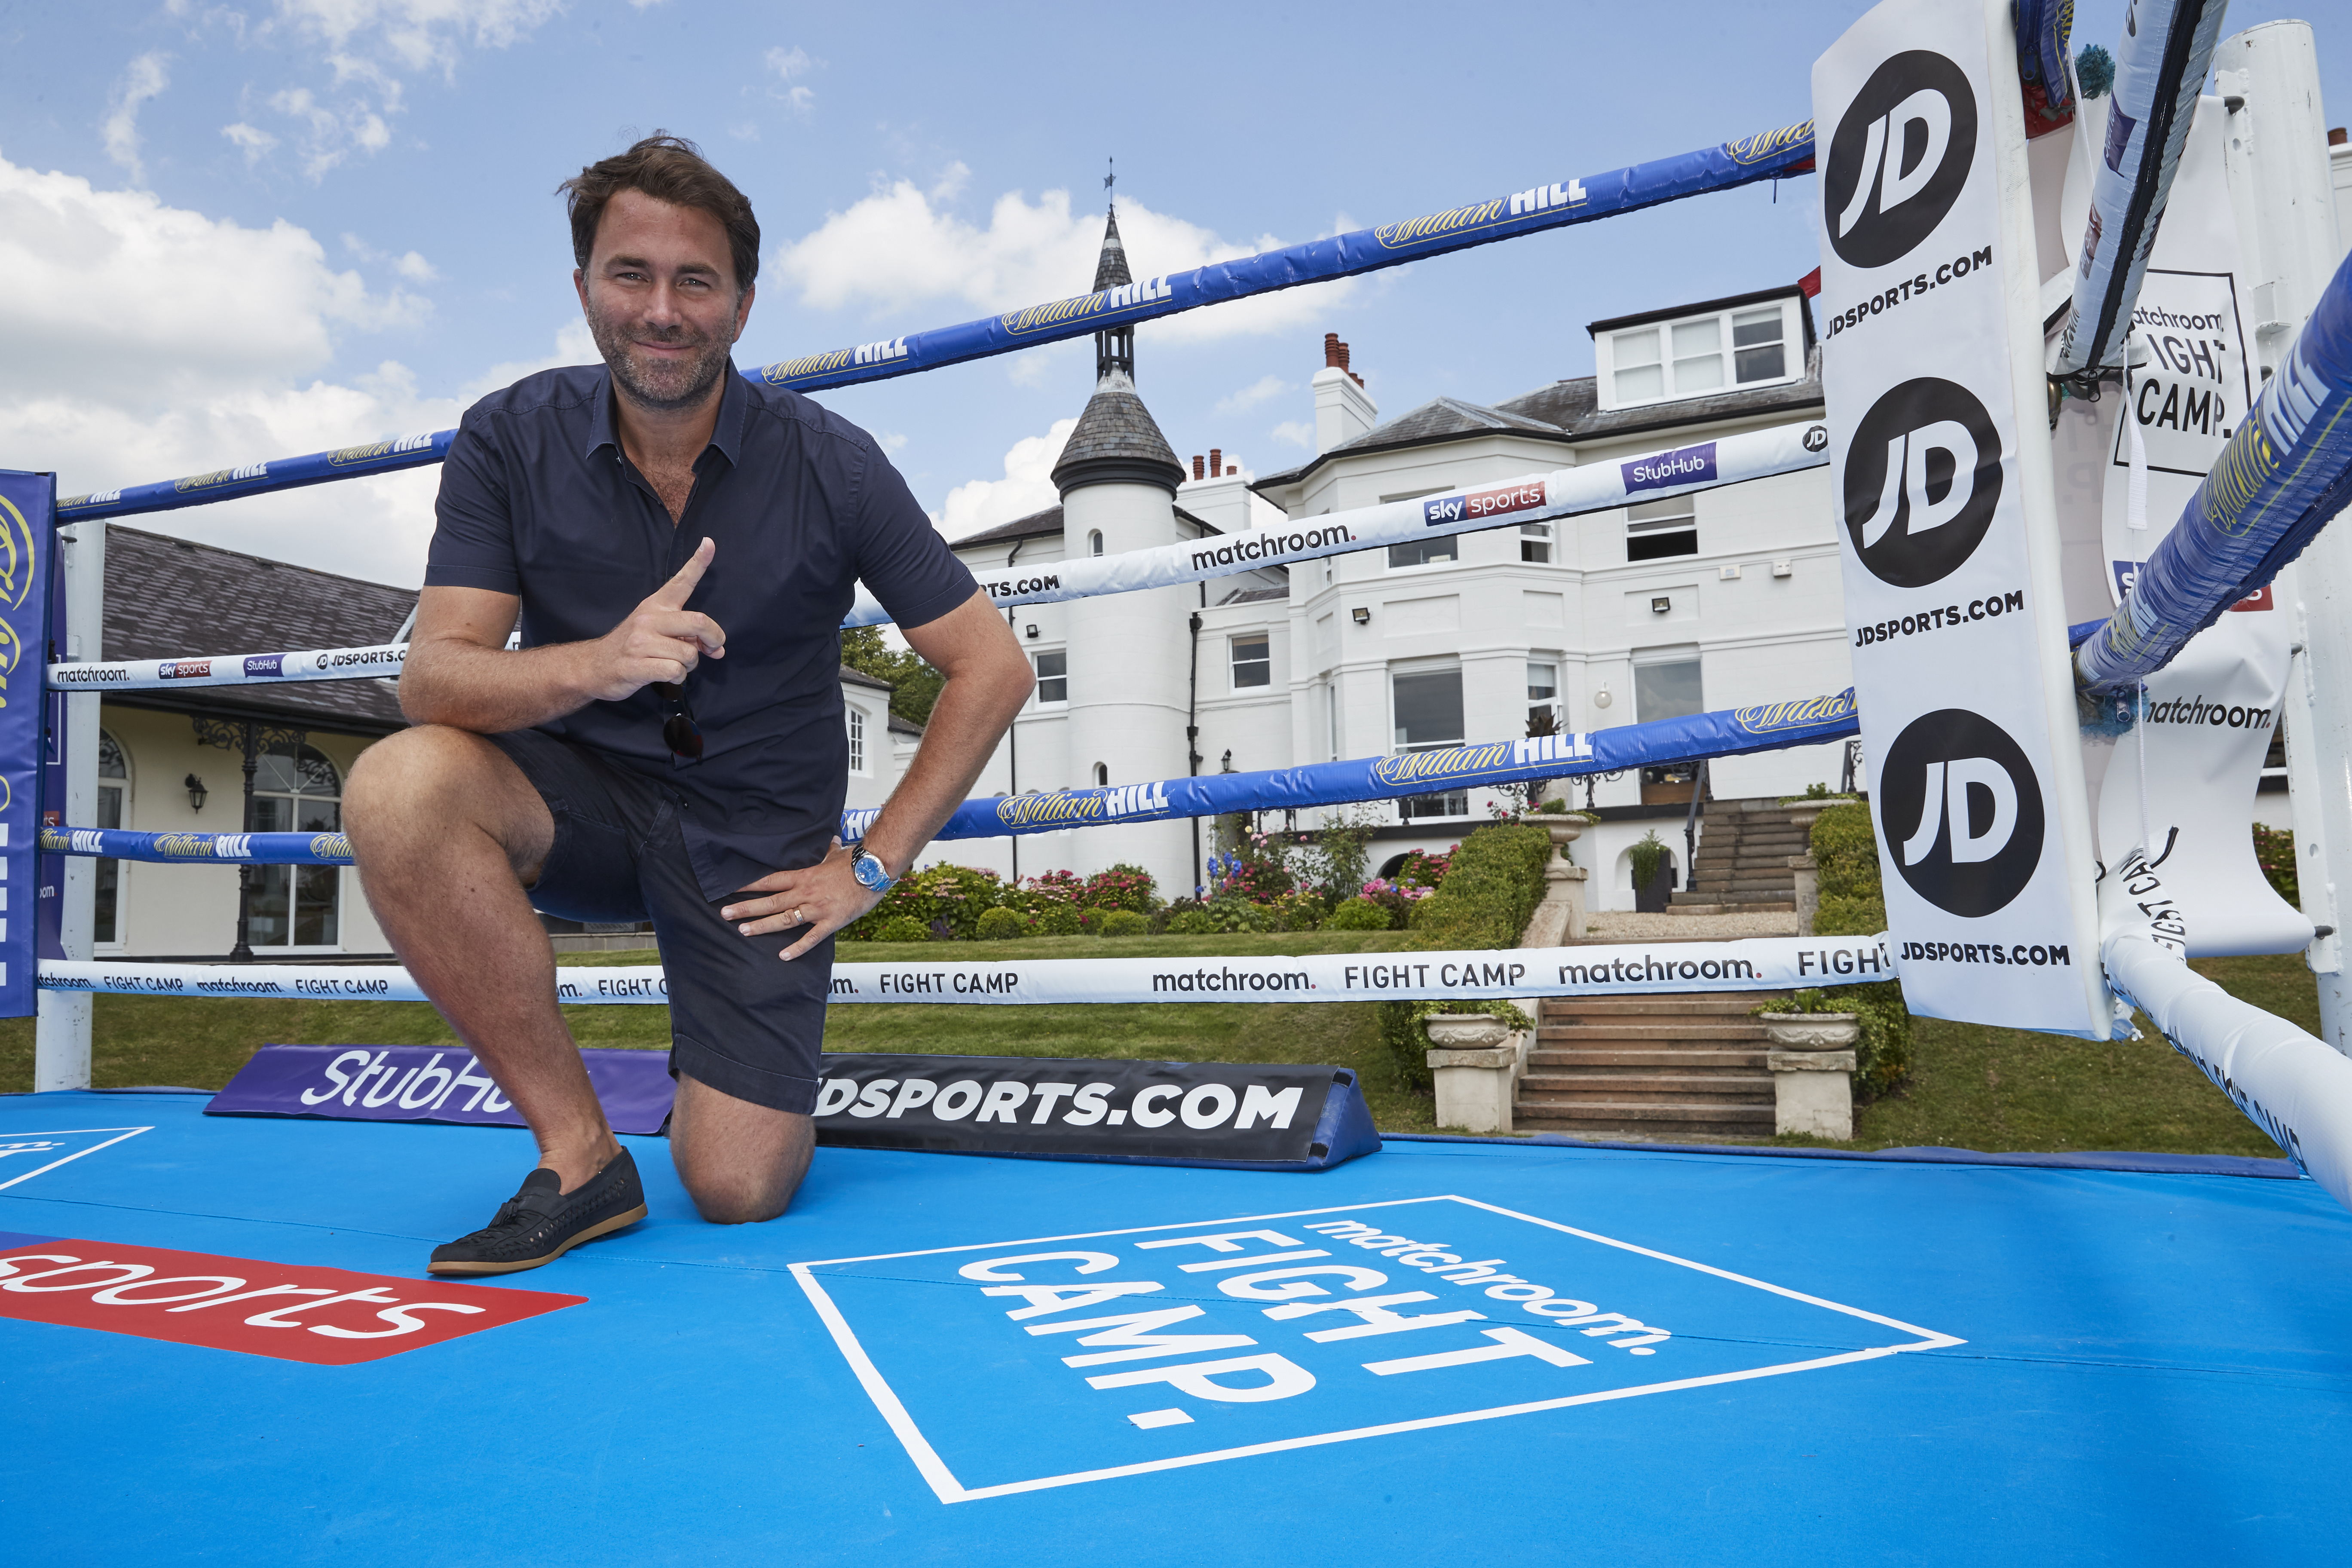 Eddie Hearn EXCLUSIVE: Matchroom chief believes Fight Camp introduction could see boxing 'challenging other s thumbnail